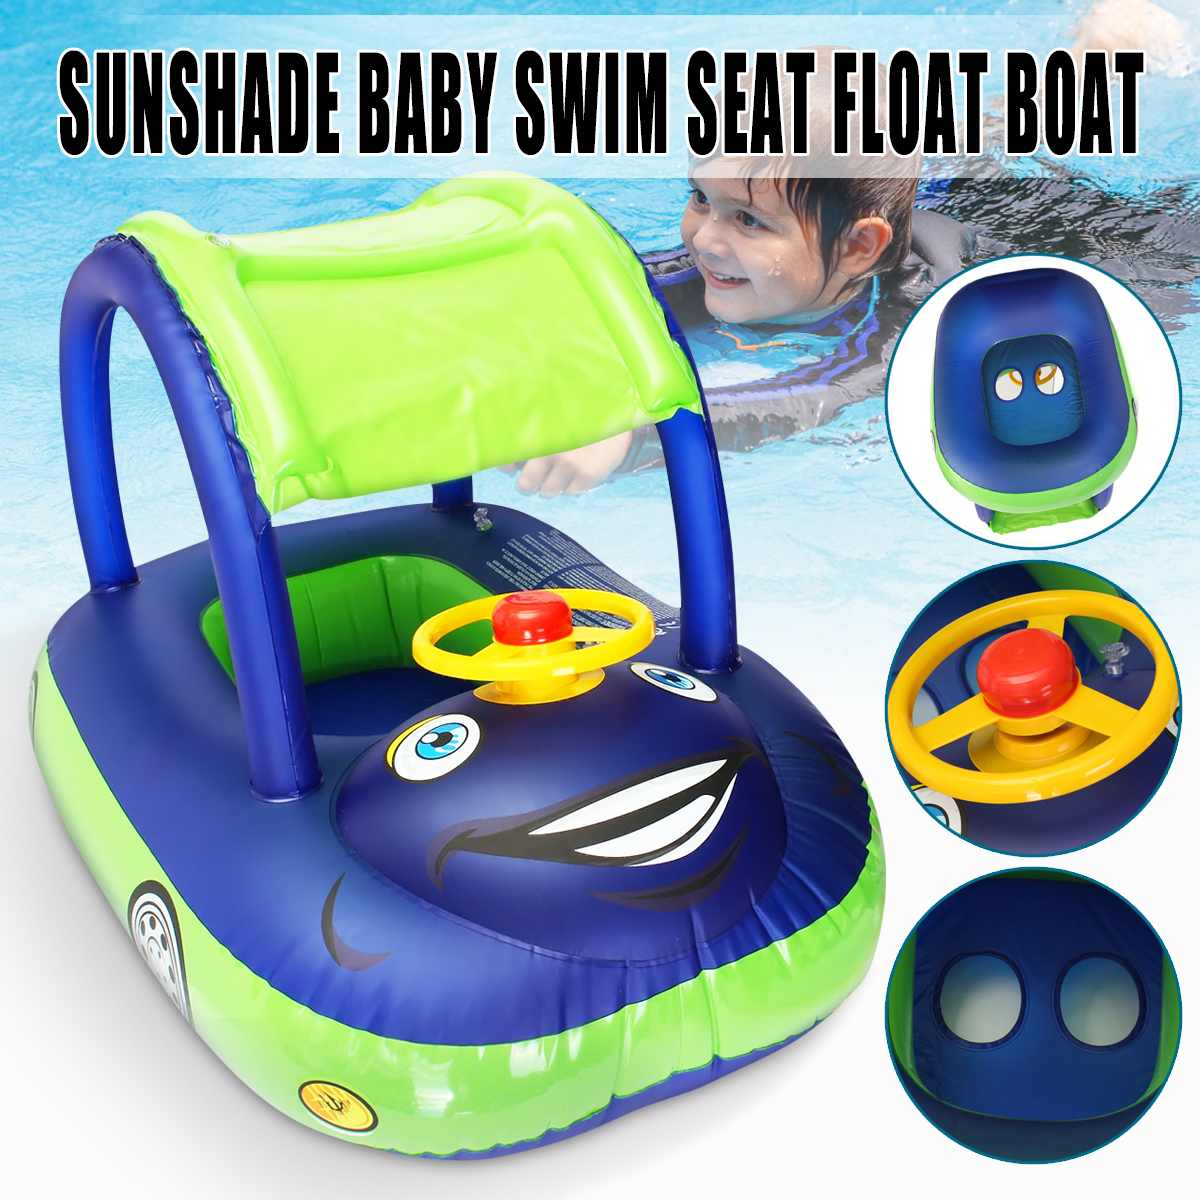 Baby Kids Summer Float Seat Boat Sun Shade Tube Ring Car Swim  Pool For Ages 6-36 Months Baby Load-bearing Water Sport Fun Toys